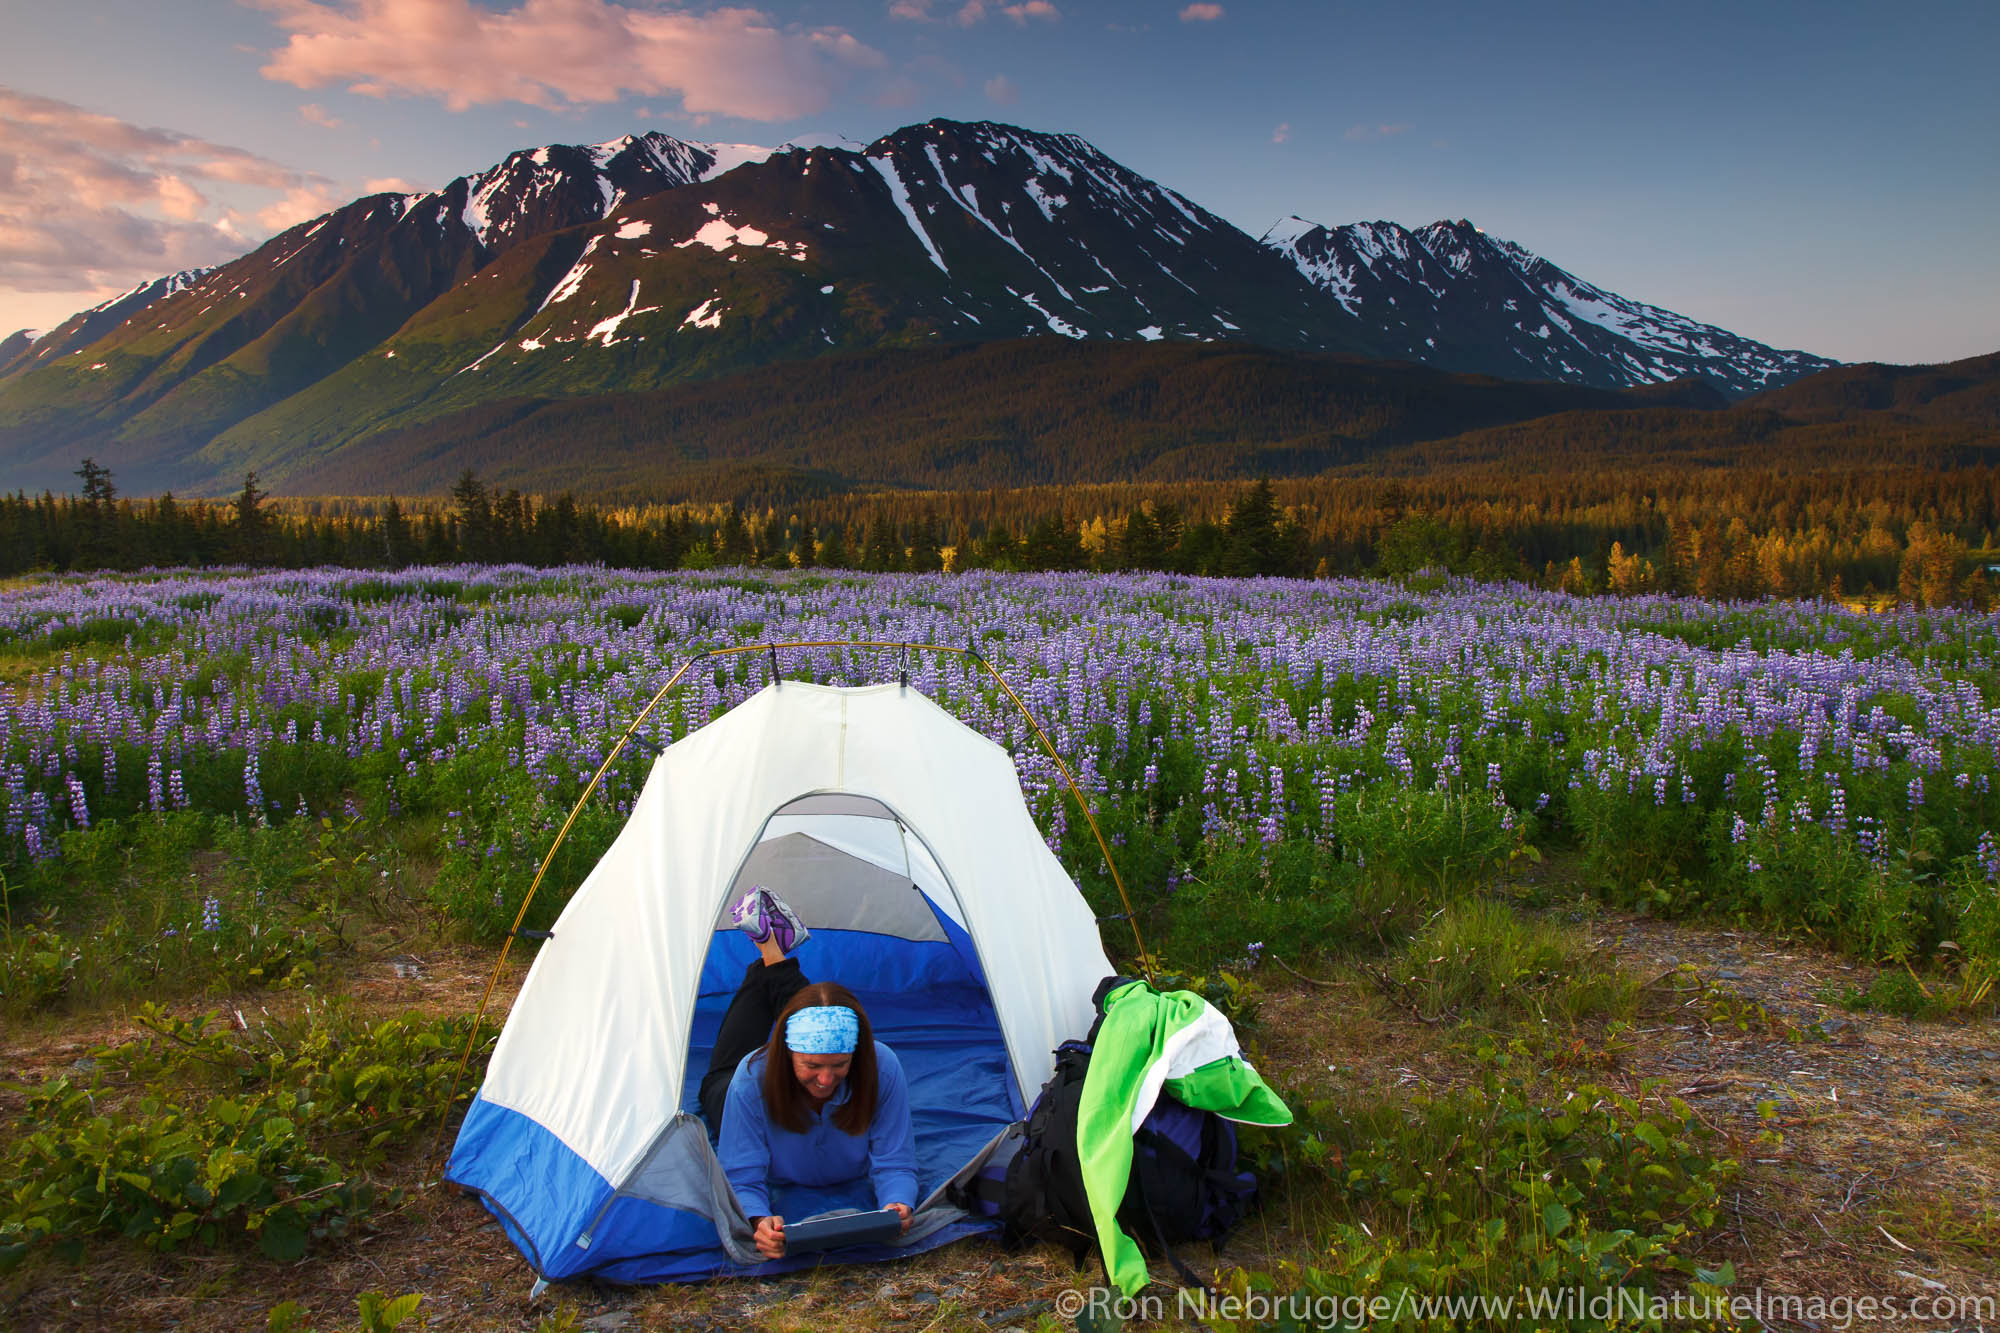 Reading an ipad while camping in the Chugach National Forest, Alaska.  (model released)